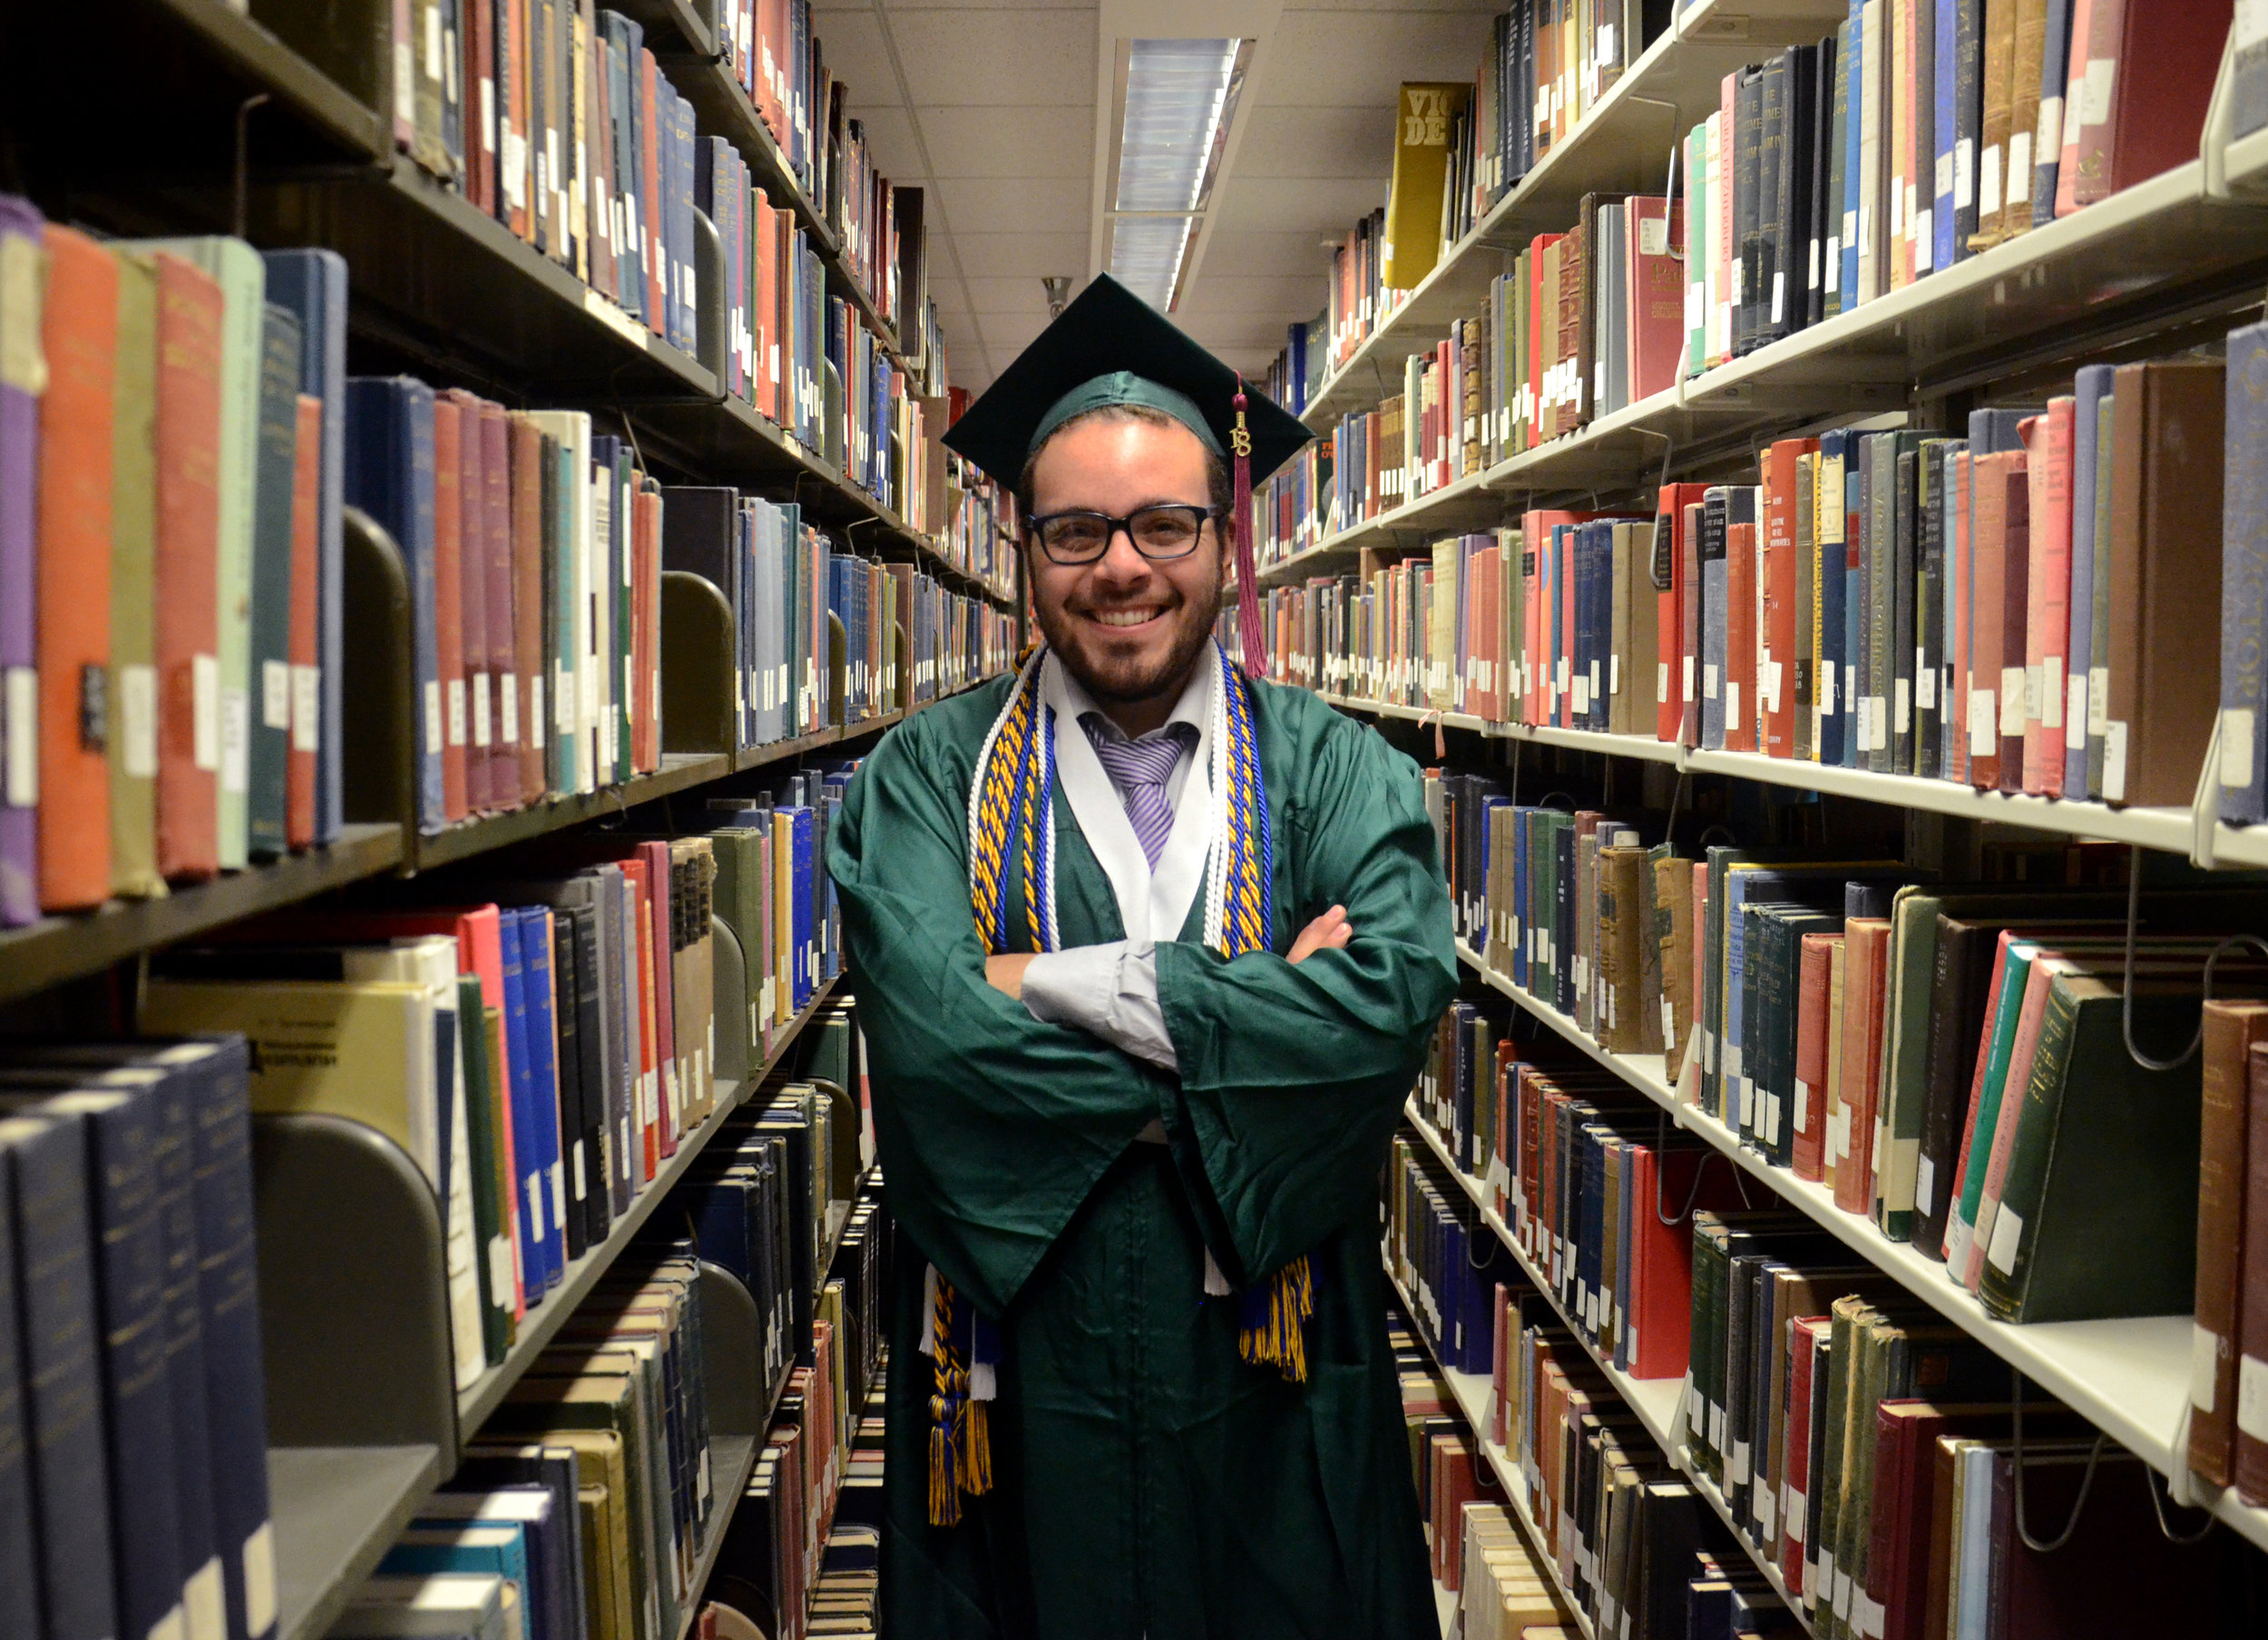 Alumni profile: Iago Bojczuk wants to help underrepresented communities in Brazil through media studies - First-generation college student Iago Bojczuk came a long way to study at the UO School of Journalism and Communication. Here are a few things the Brazilian-born media studies alum shared about his time at the SOJC, how it helped him plot his course to grad school at MIT and where he's bound for next.